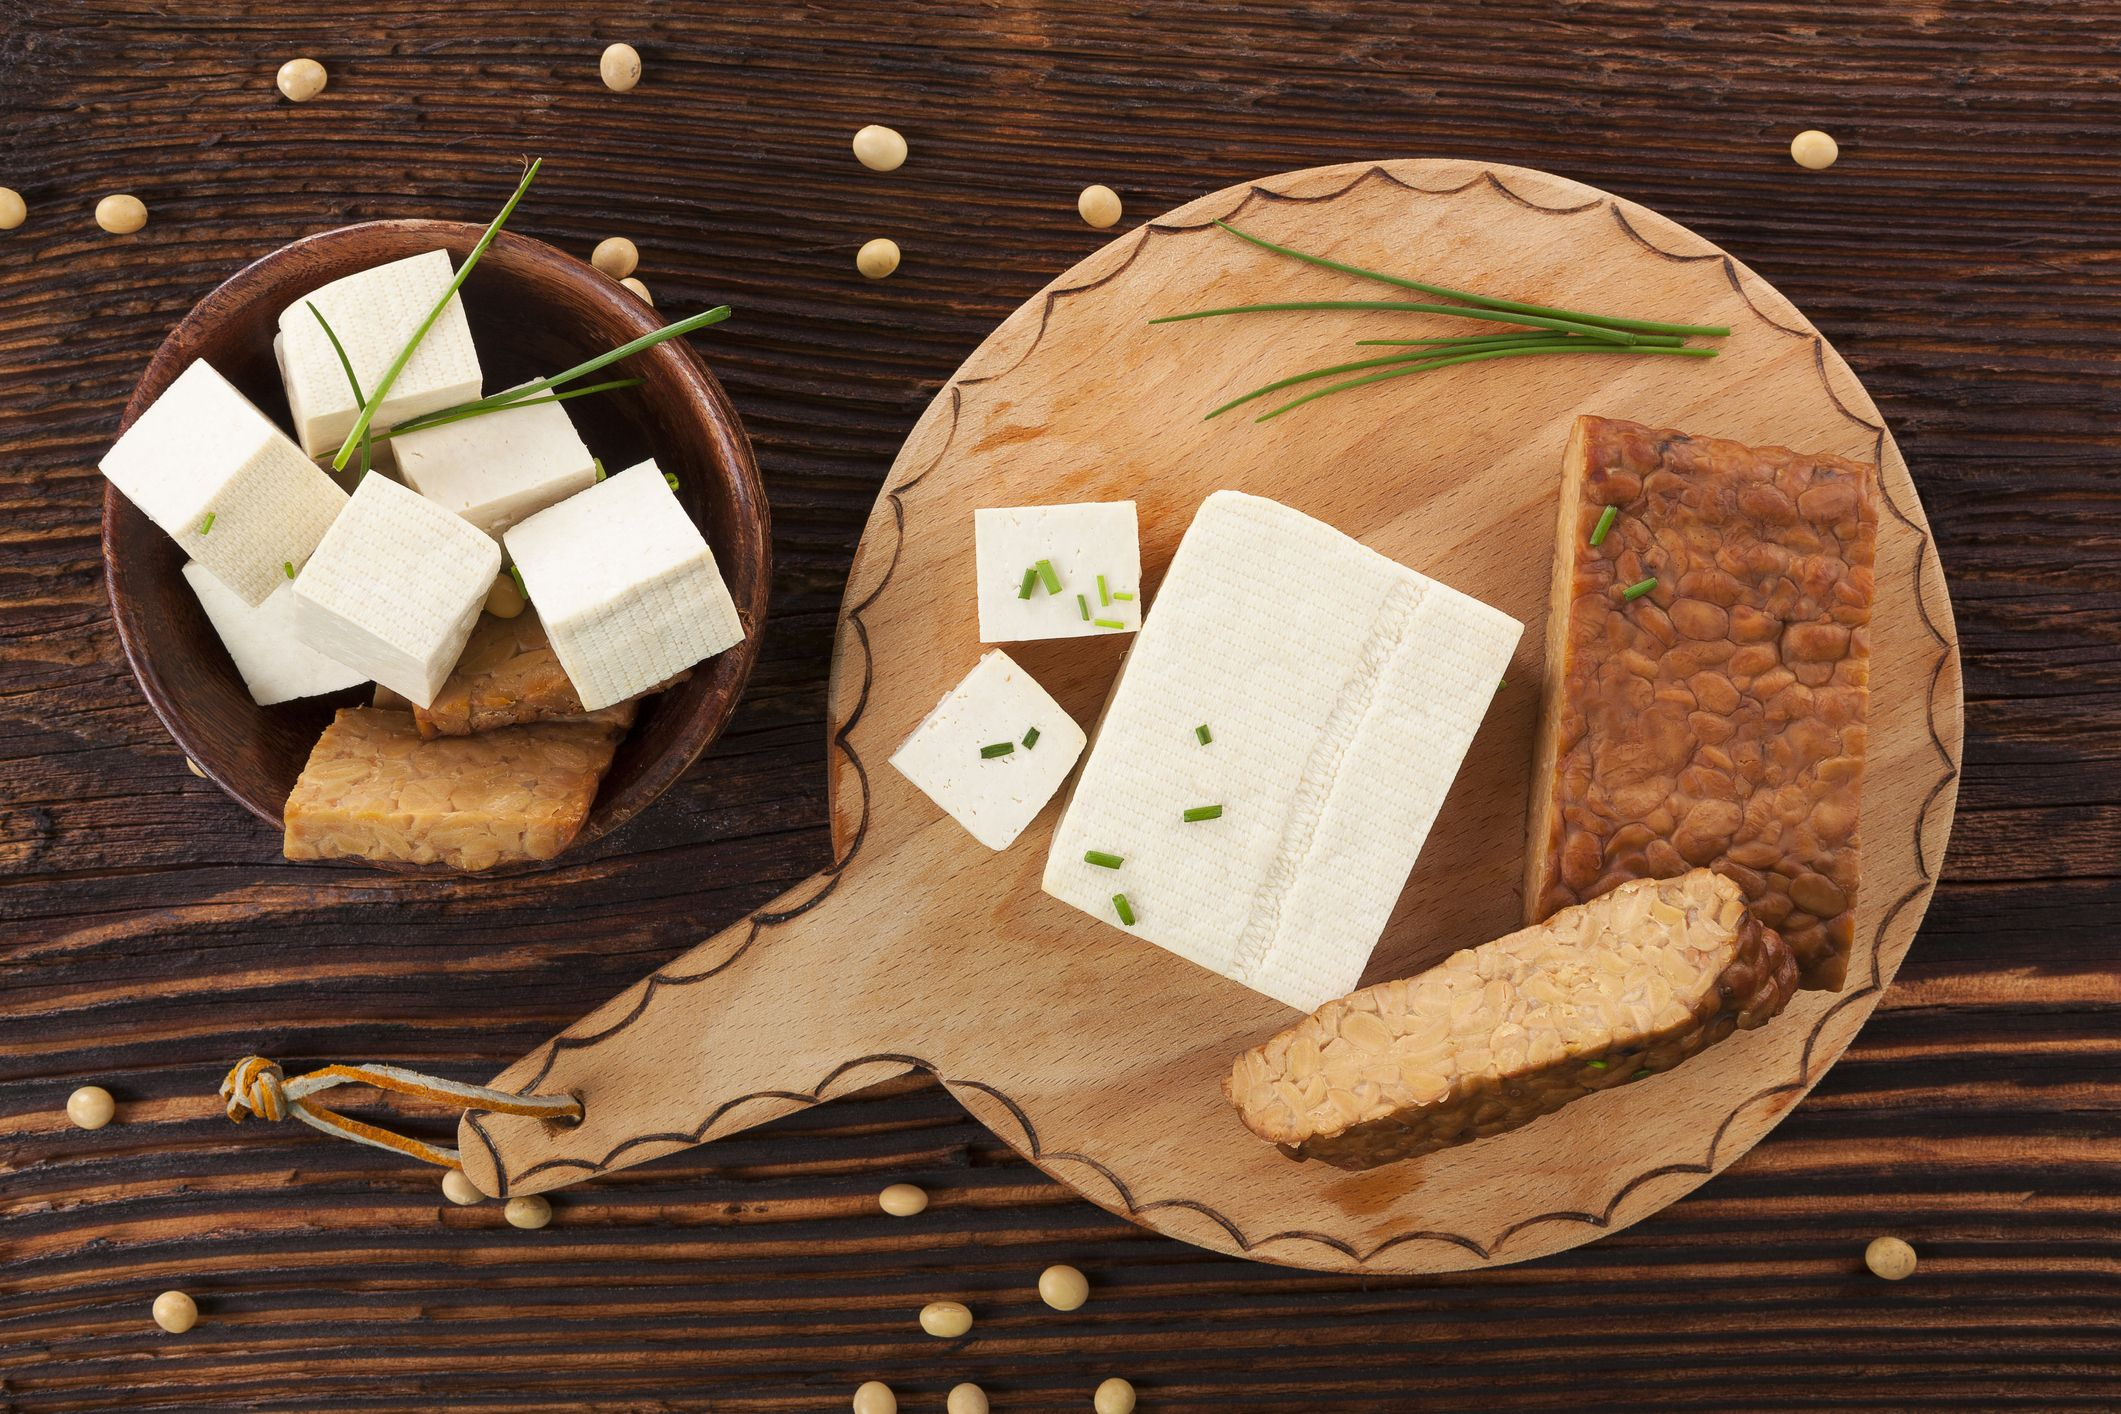 Tempeh Vs. Tofu: Which Plant-Based Protein Is Healthier?